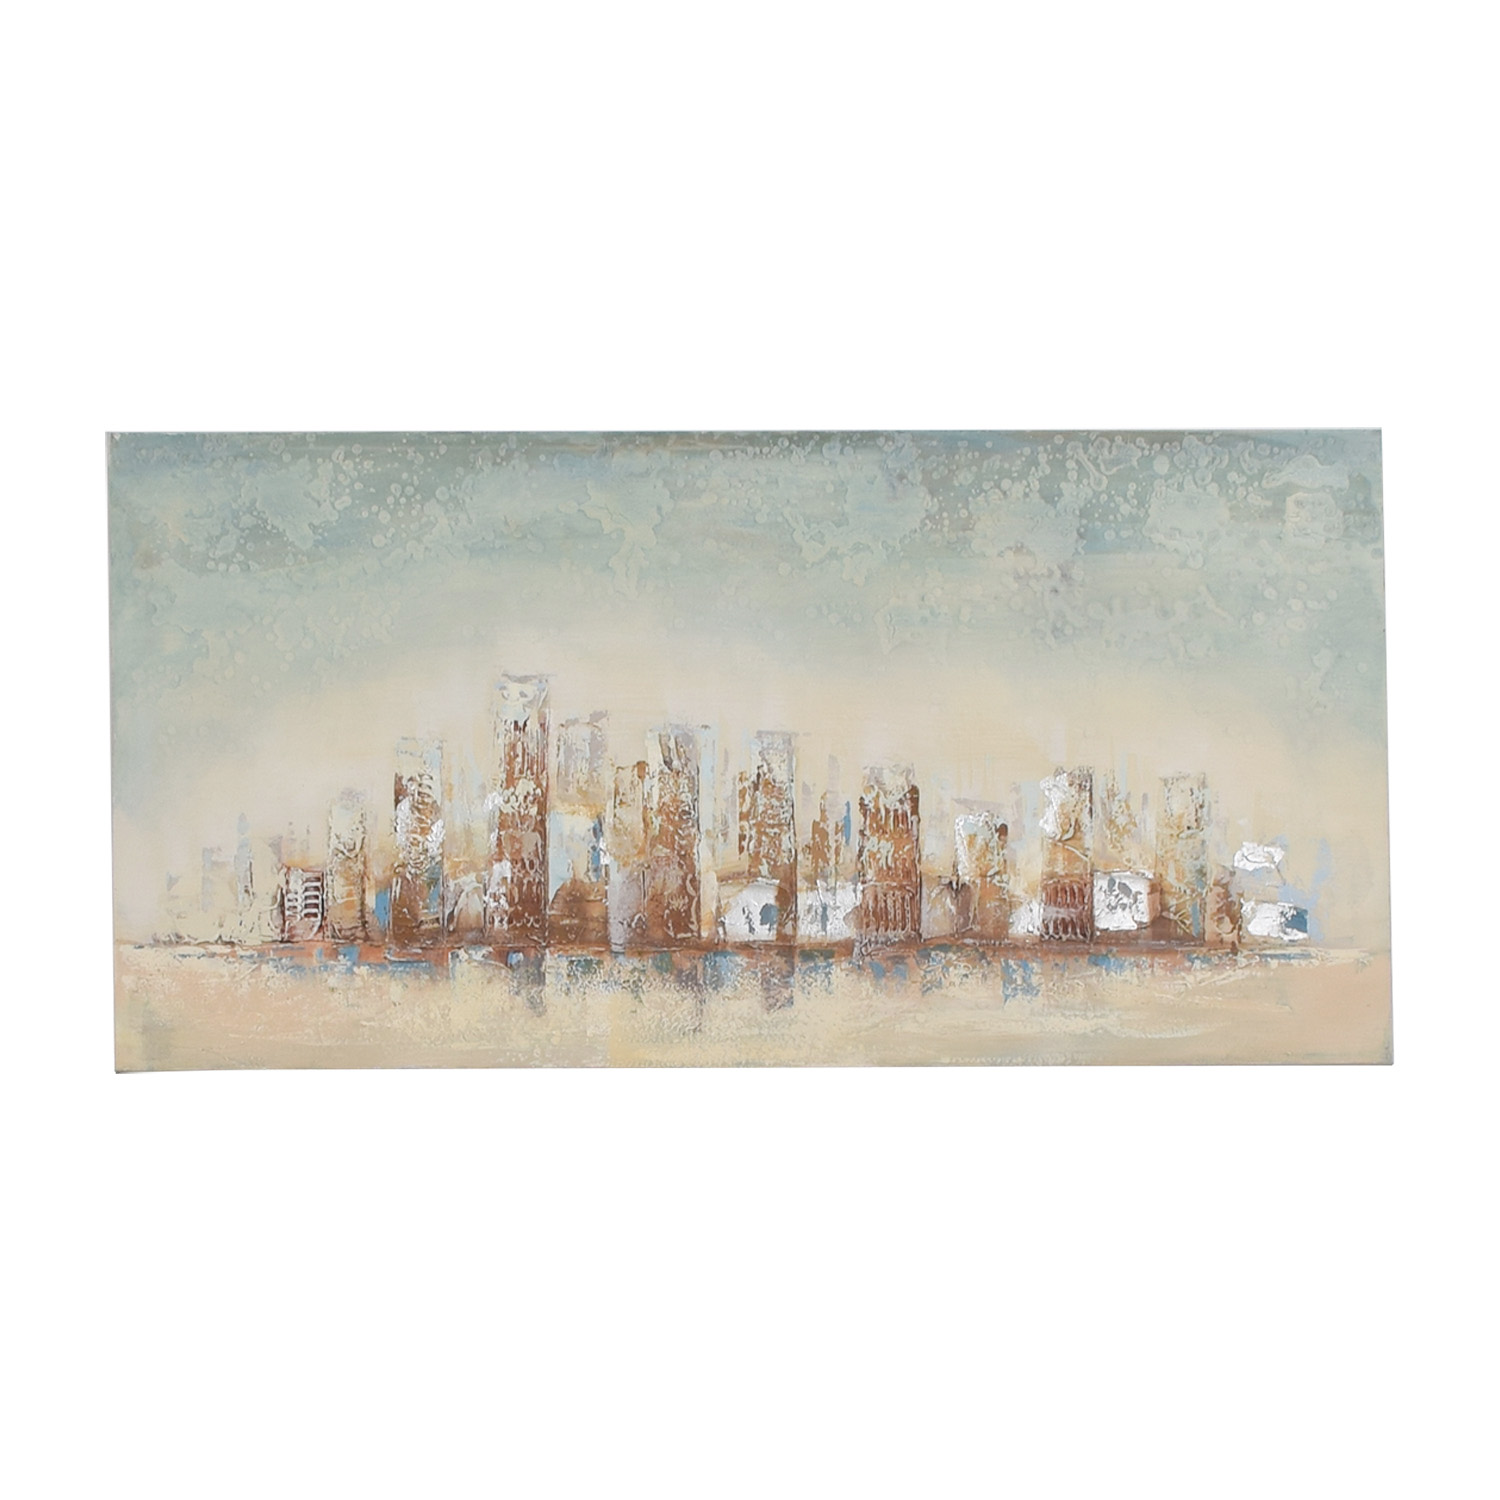 Pier 1 Imports Skyline Wood Framed Painting sale